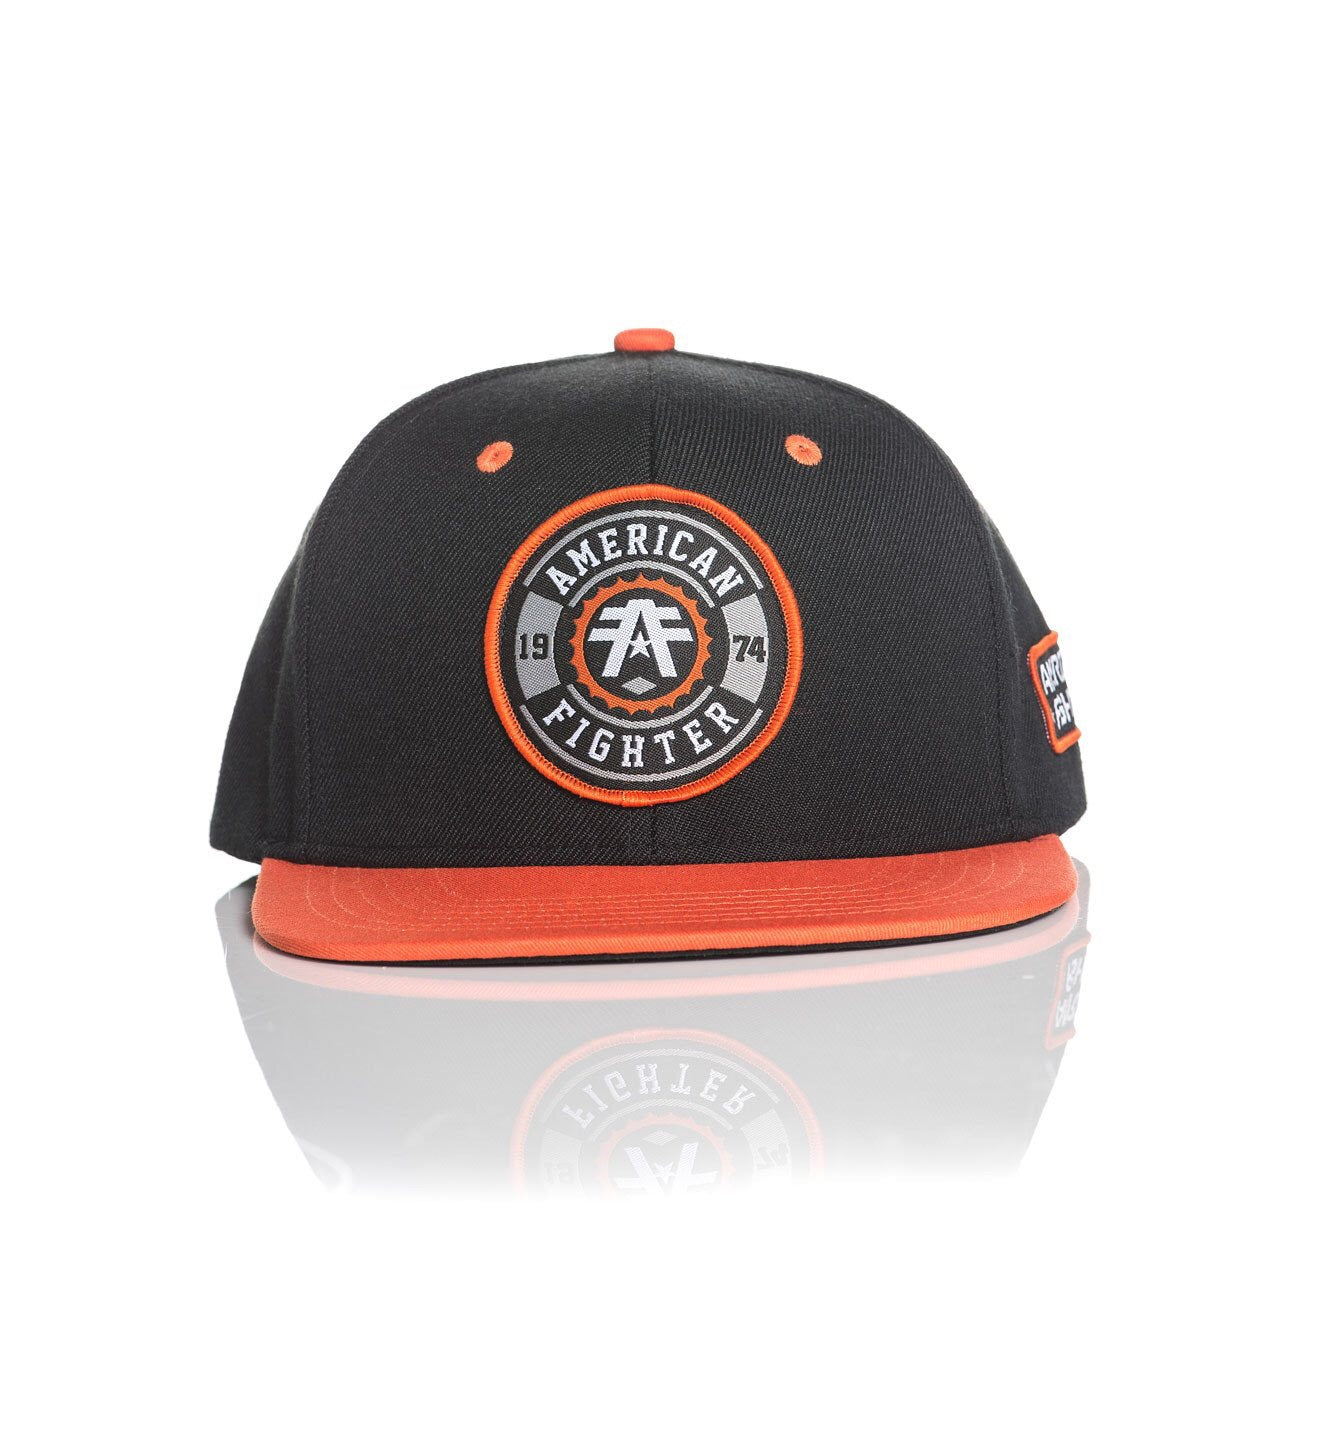 AMERICAN FIGHTER CAP SNAPBACK (FREE SHIPPING)